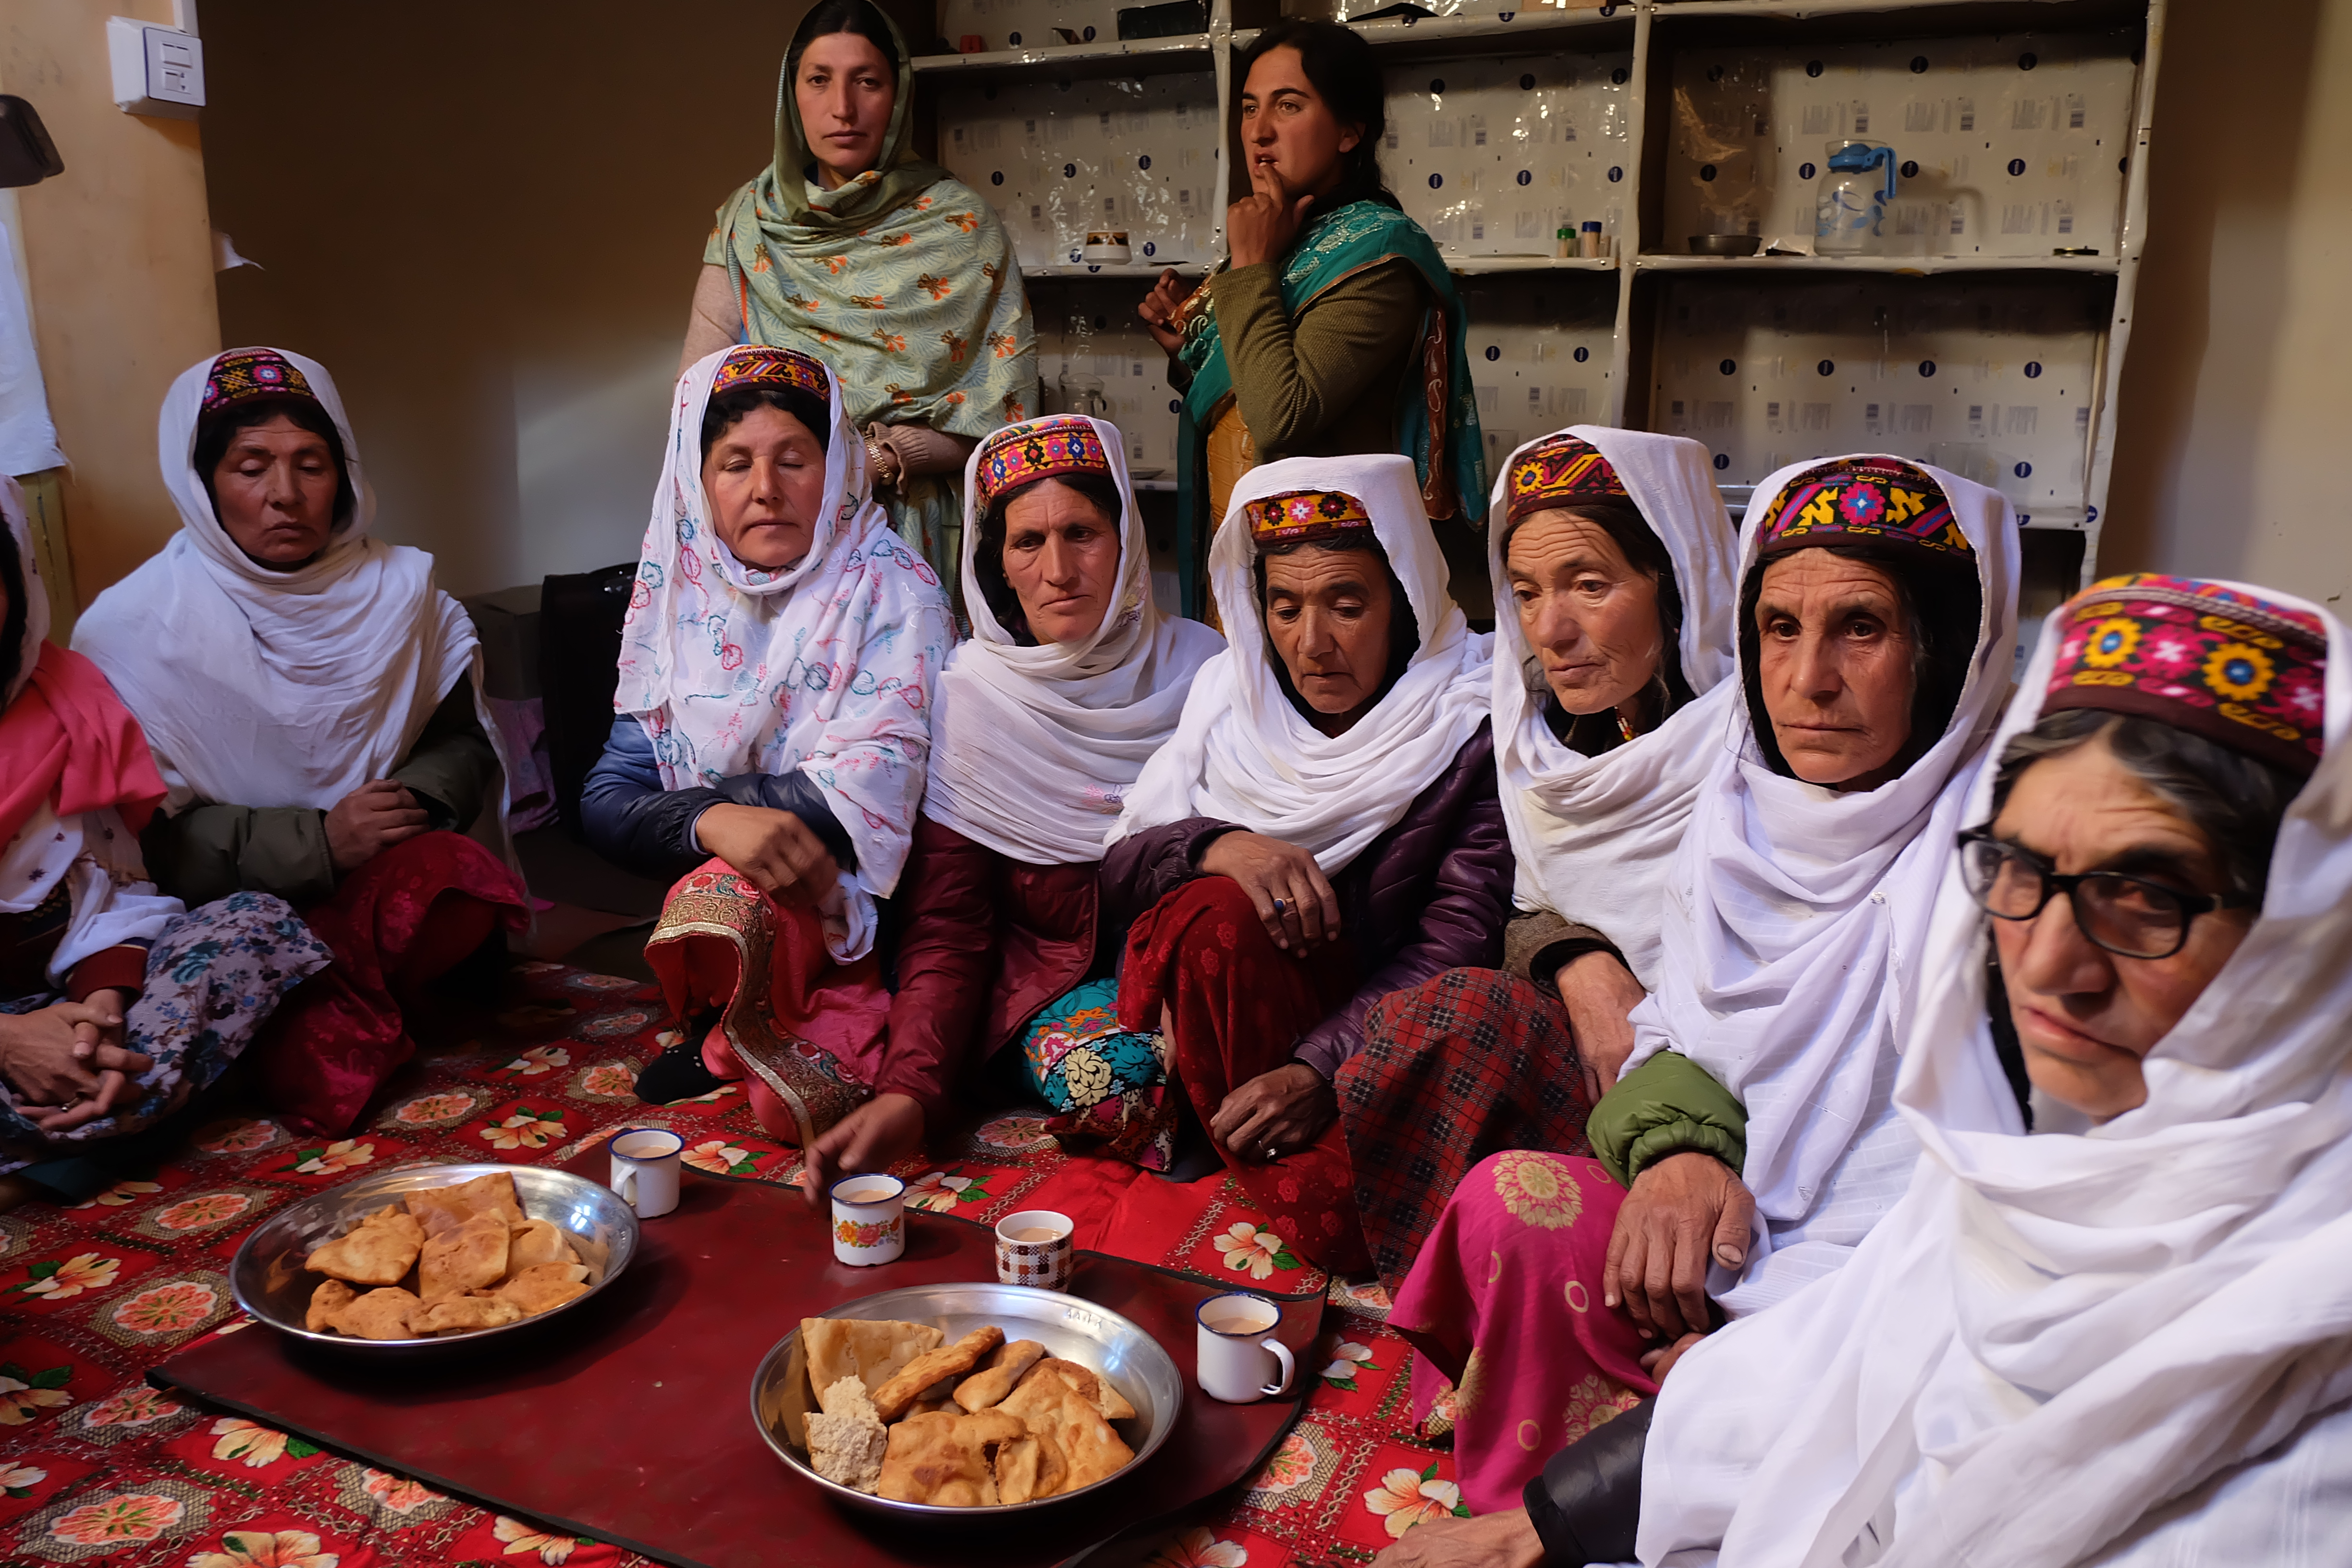 Hunza Women on the occasion of a local wedding. Natural splendors of Pakistan